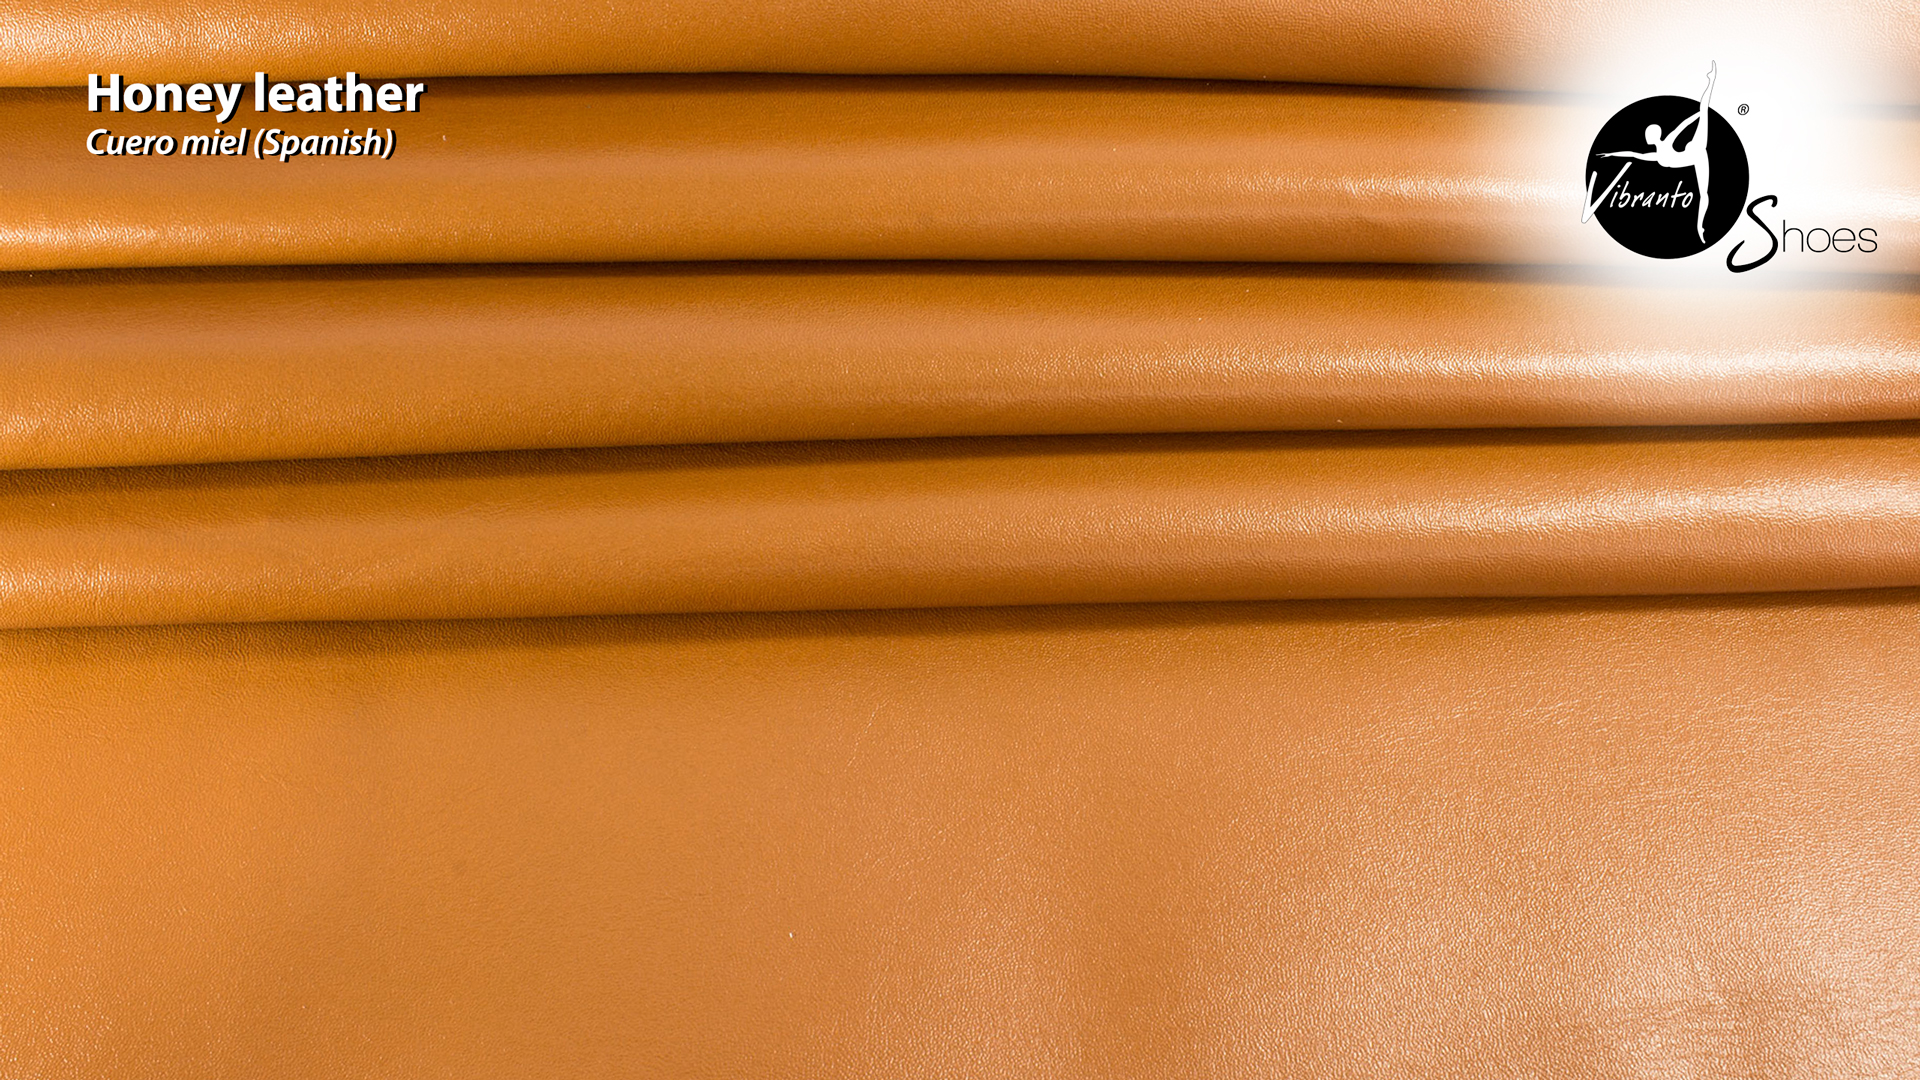 Honey leather light brown Vibranto Shoes Material